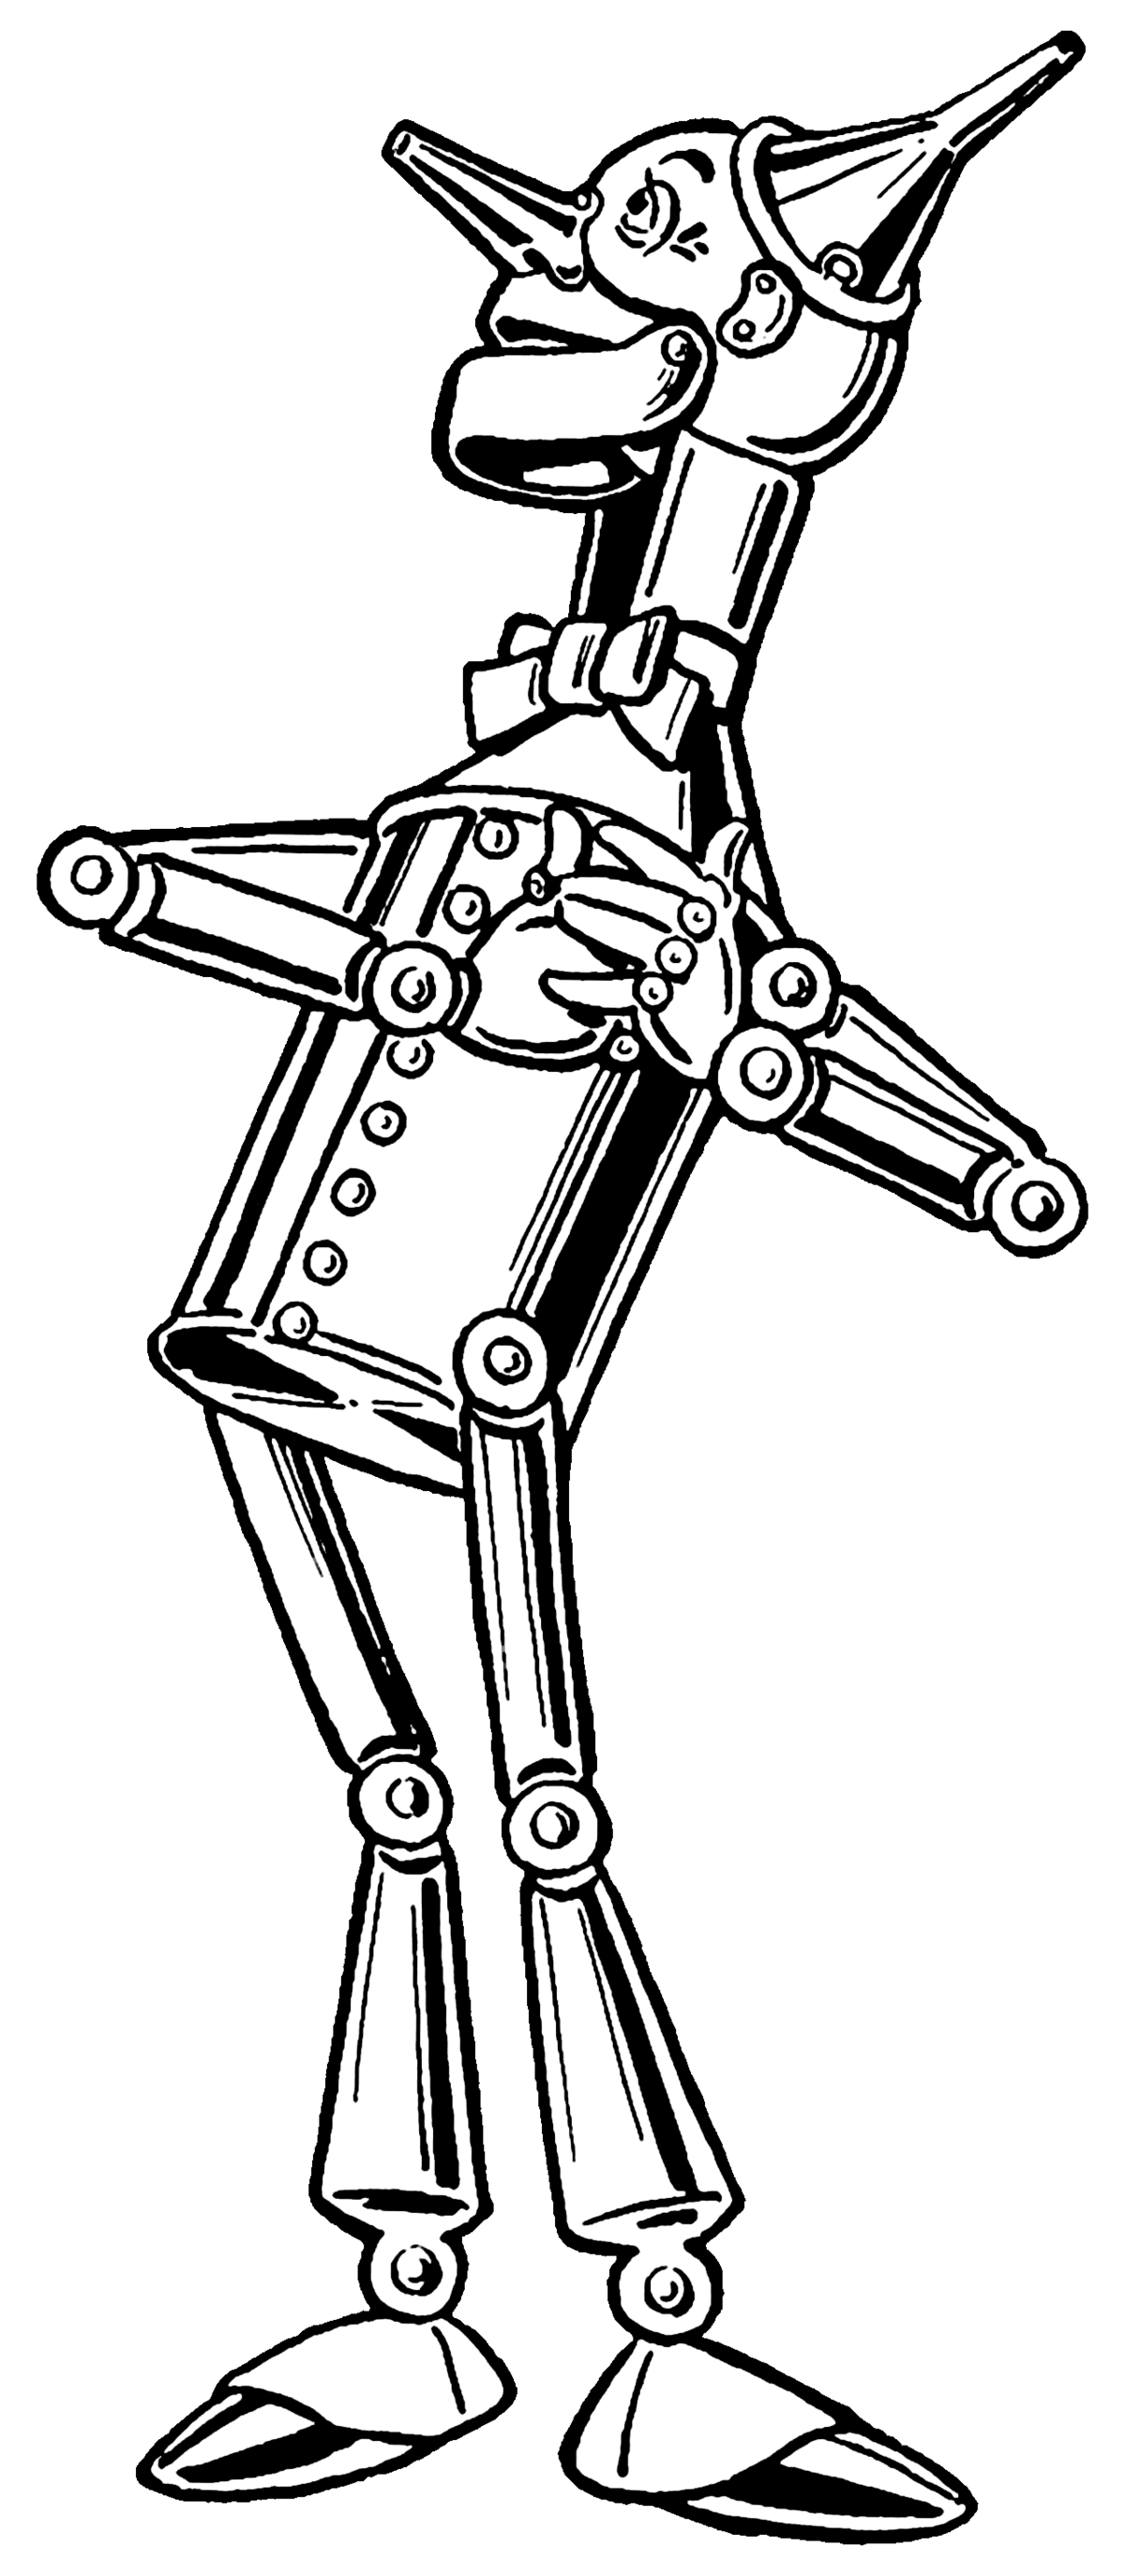 Tin Woodman Wikipedia